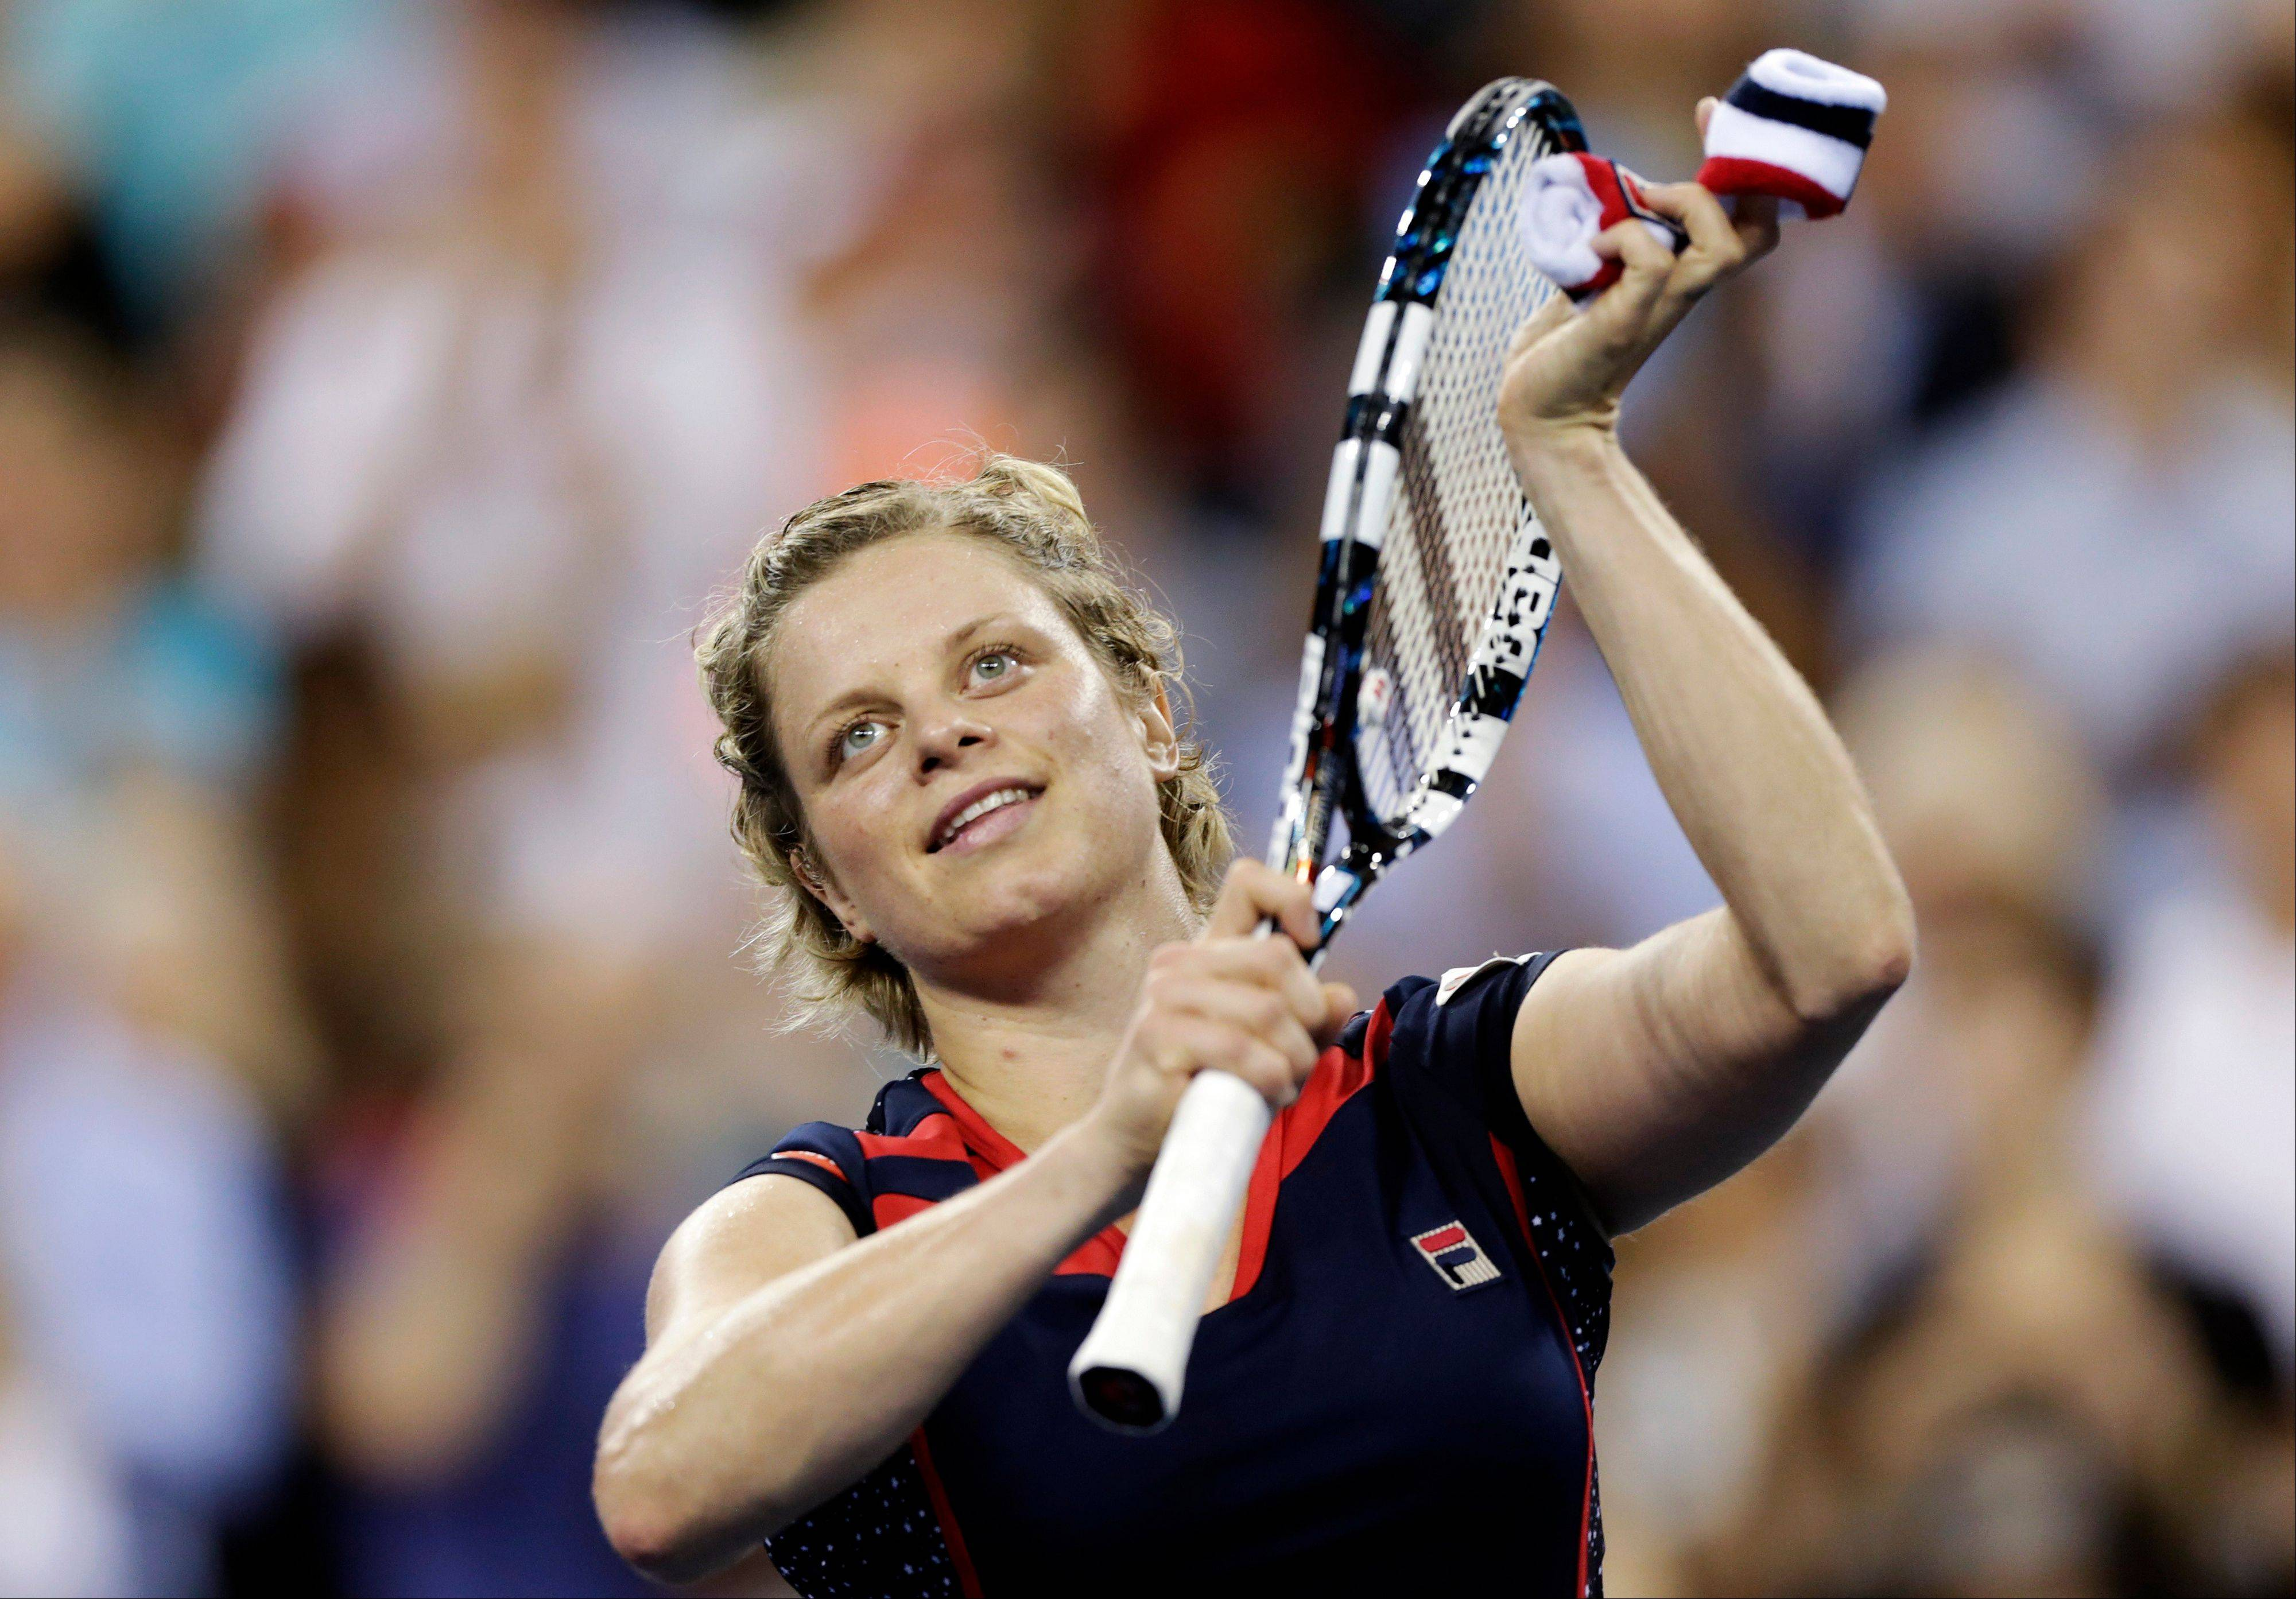 Kim Clijsters thanks the crowd after defeating Victoria Duval 6-3, 6-1 on Monday in the first round of play at the U.S. Open tennis tournament in New York.